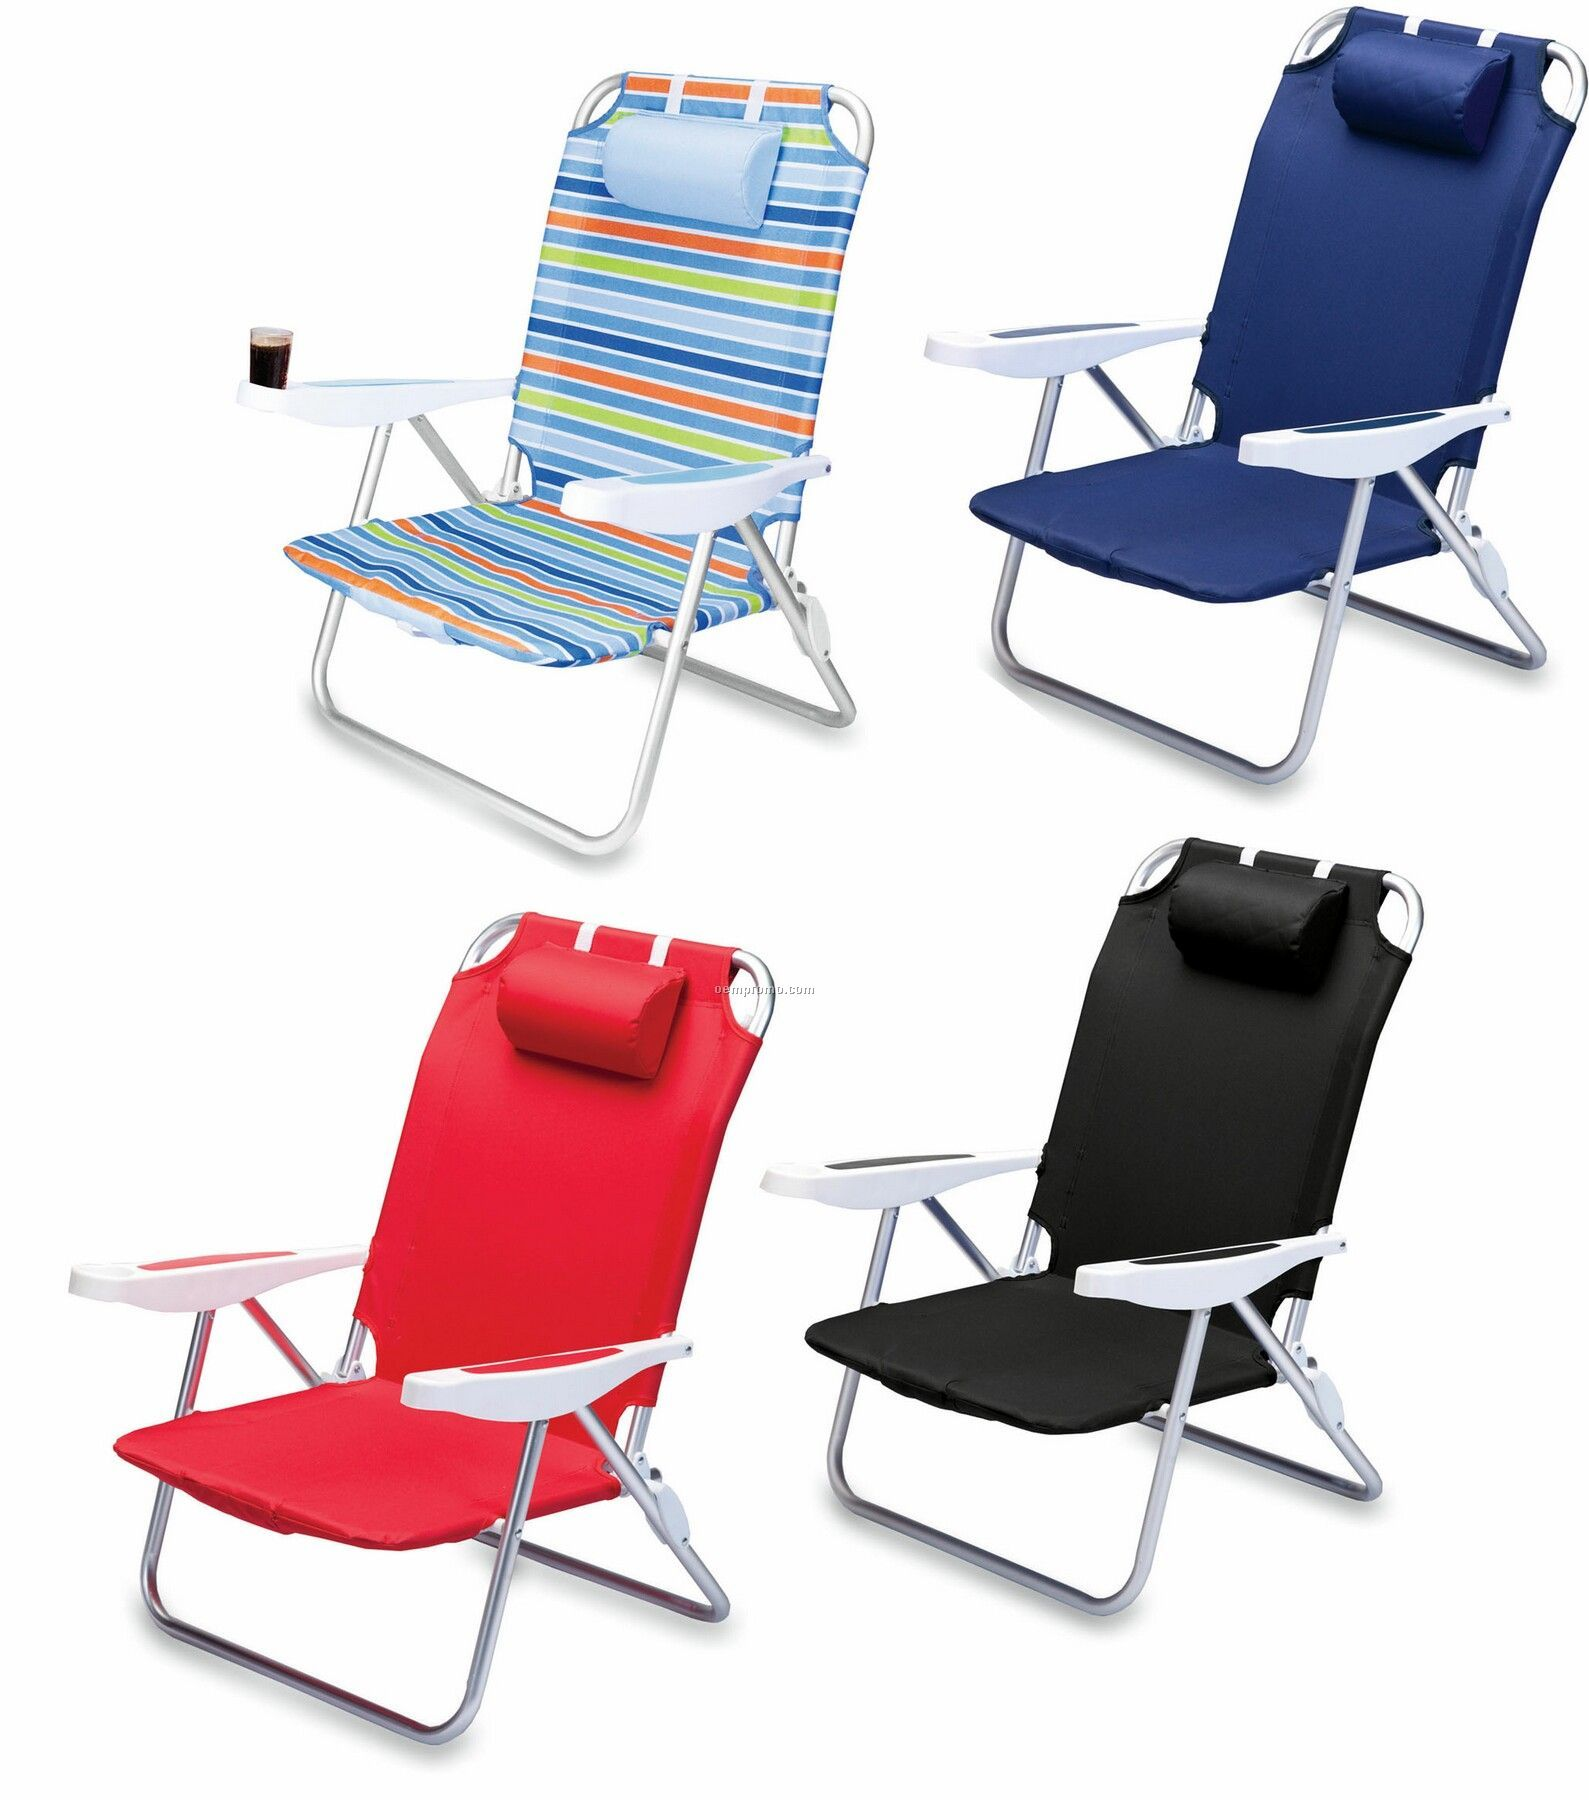 Monaco Beach Chair W/ 6 Reclining Positions & Backpack Straps